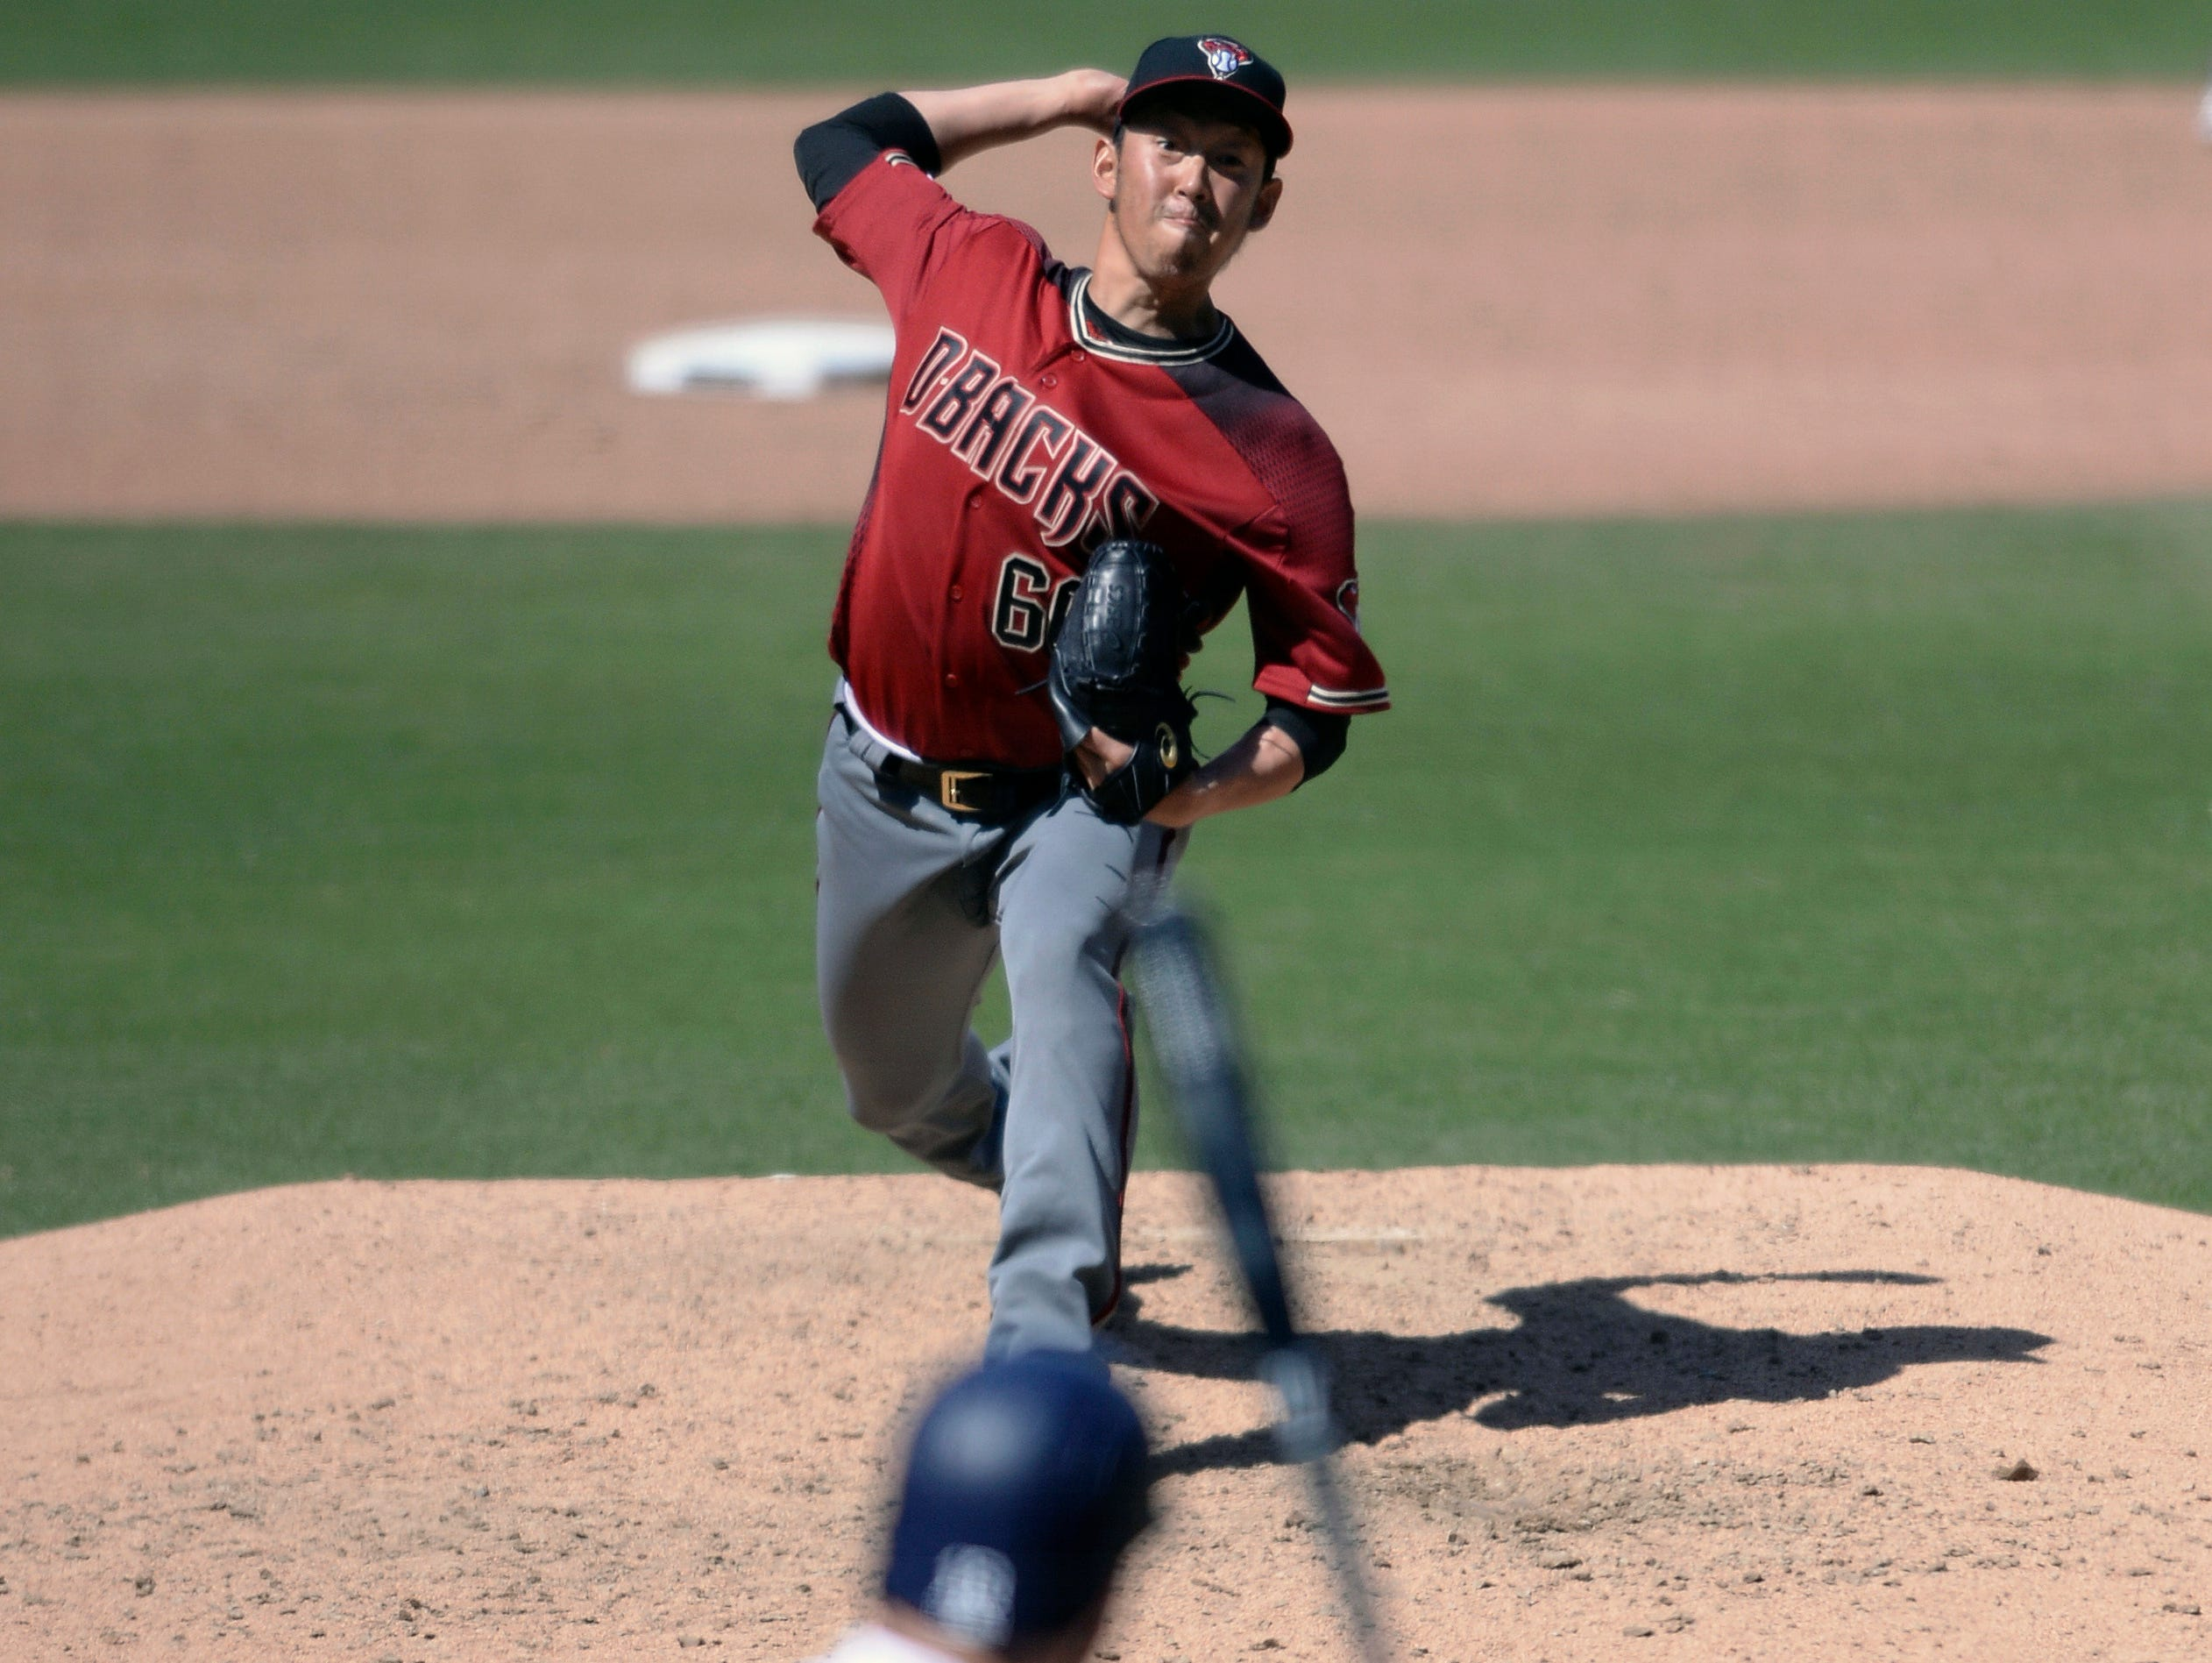 Arizona Diamondbacks relief pitcher Yoshihisa Hirano works against a San Diego Padres batter during the sixth inning of a baseball game Wednesday, April 3, 2019, in San Diego. (AP Photo/Orlando Ramirez)